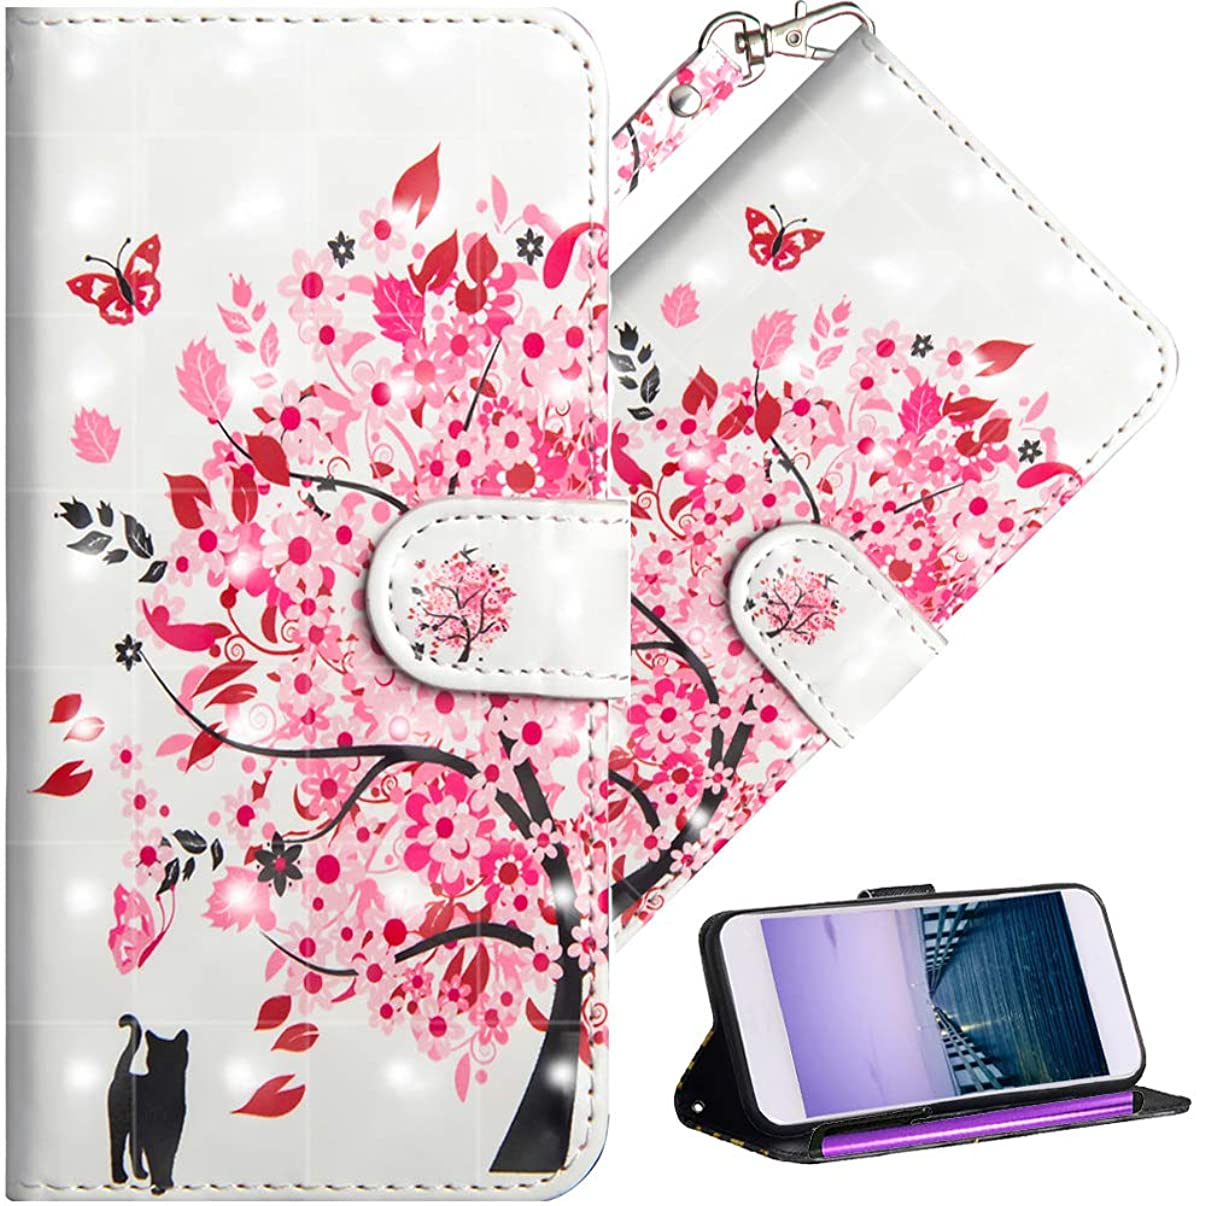 HMTECHUS LG Aristo 2 case V3 2018 Wallet case PU Leather 3D Effect Shell Magnetic Clasp Shockproof Flip Card Holder Protective Cover for LG Aristo 2 Plus / K8 2018 (US Model) Tree cat YX